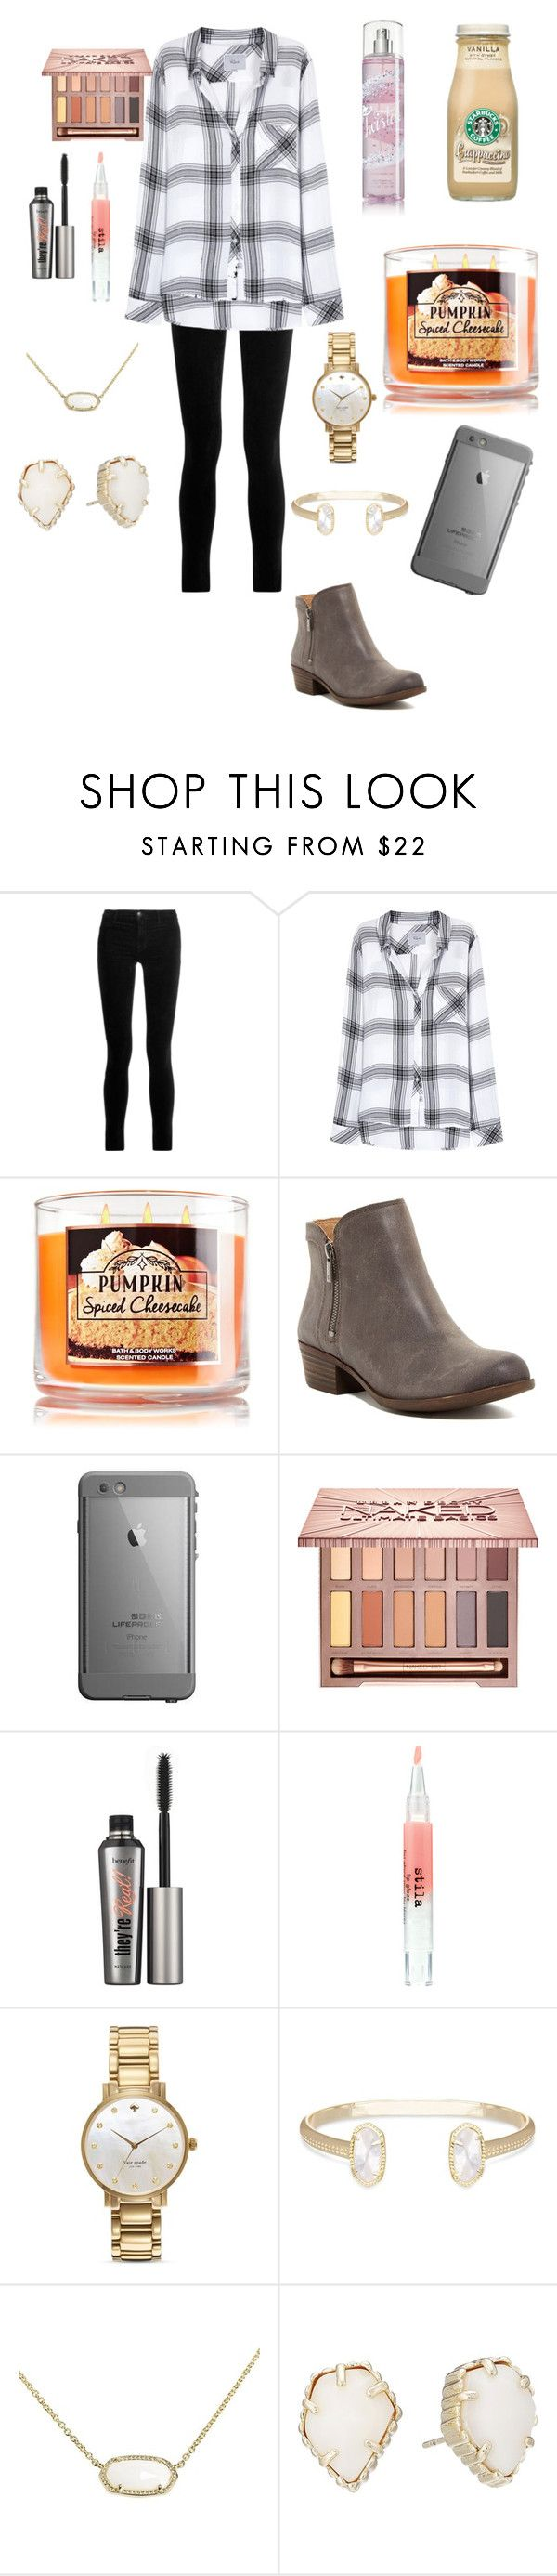 """Go follow @lilly1345"" by mae343 on Polyvore featuring J Brand, Rails, Lucky Brand, Urban Decay, Benefit, Stila, Kate Spade and Kendra Scott"